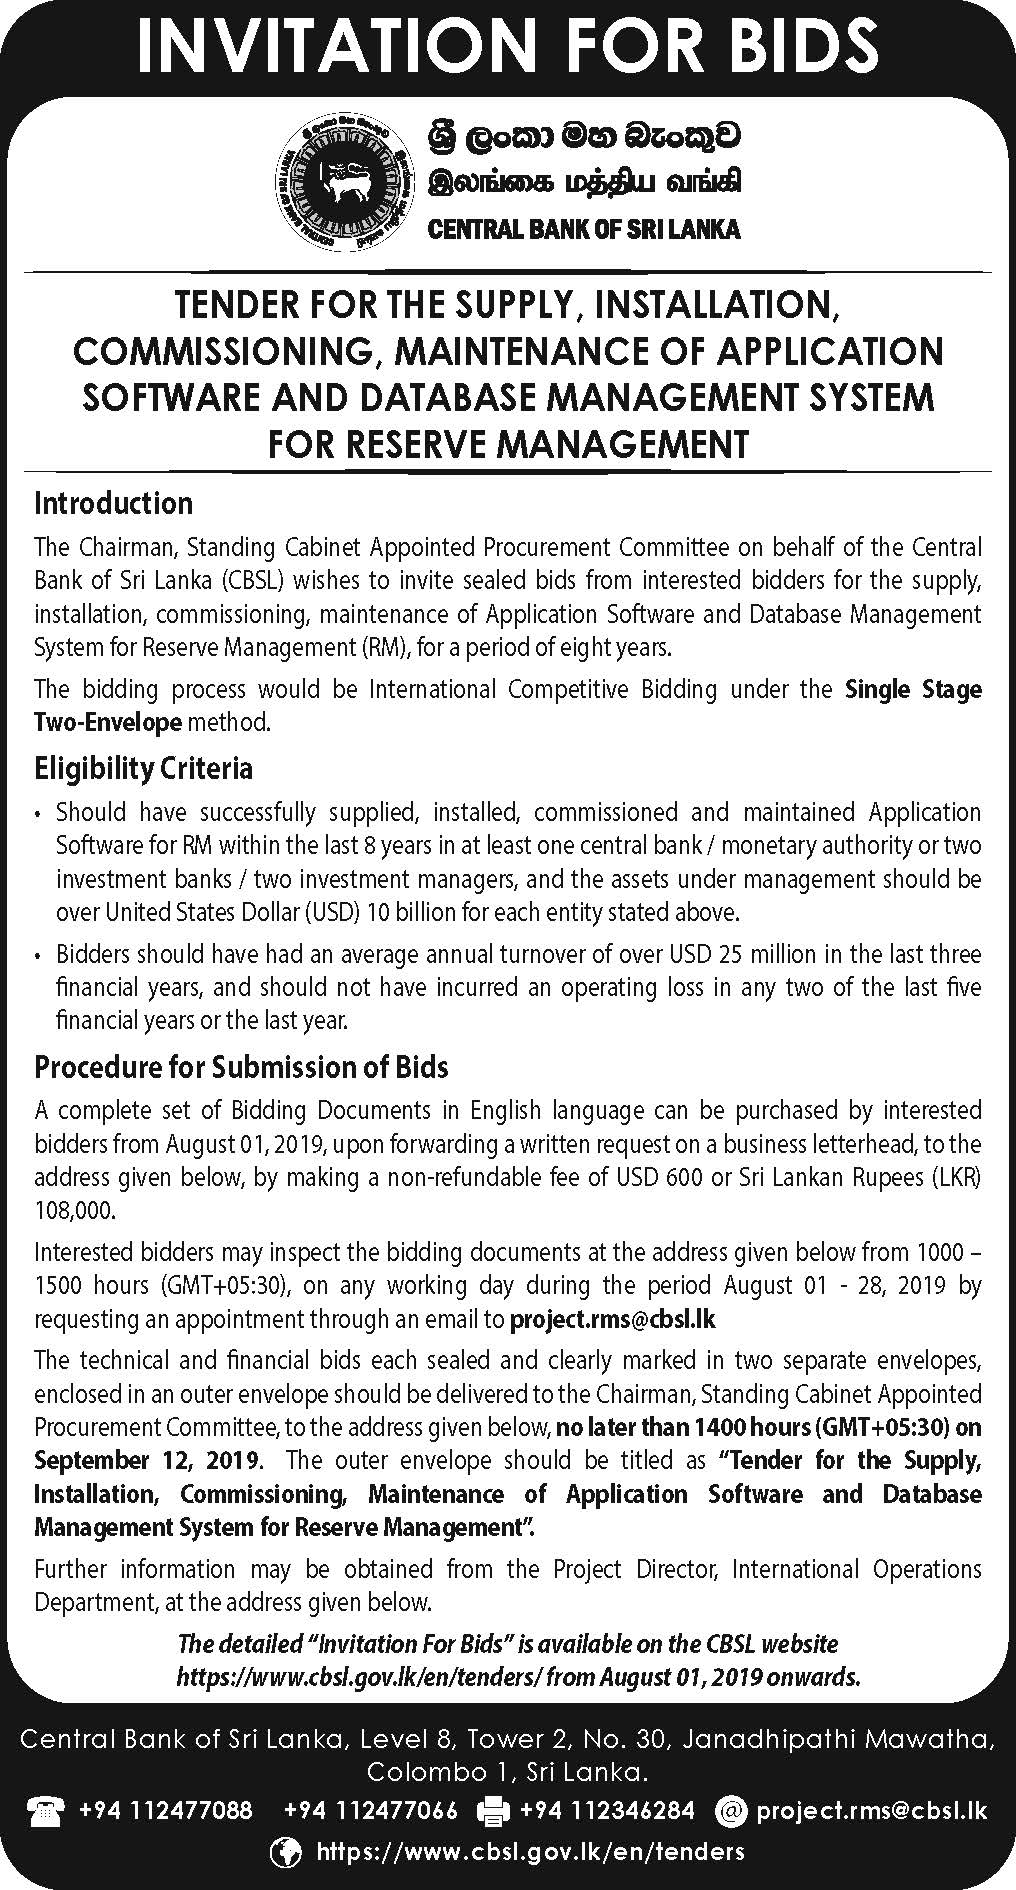 TENDER FOR THE SUPPLY, INSTALLATION, COMMISSIONING